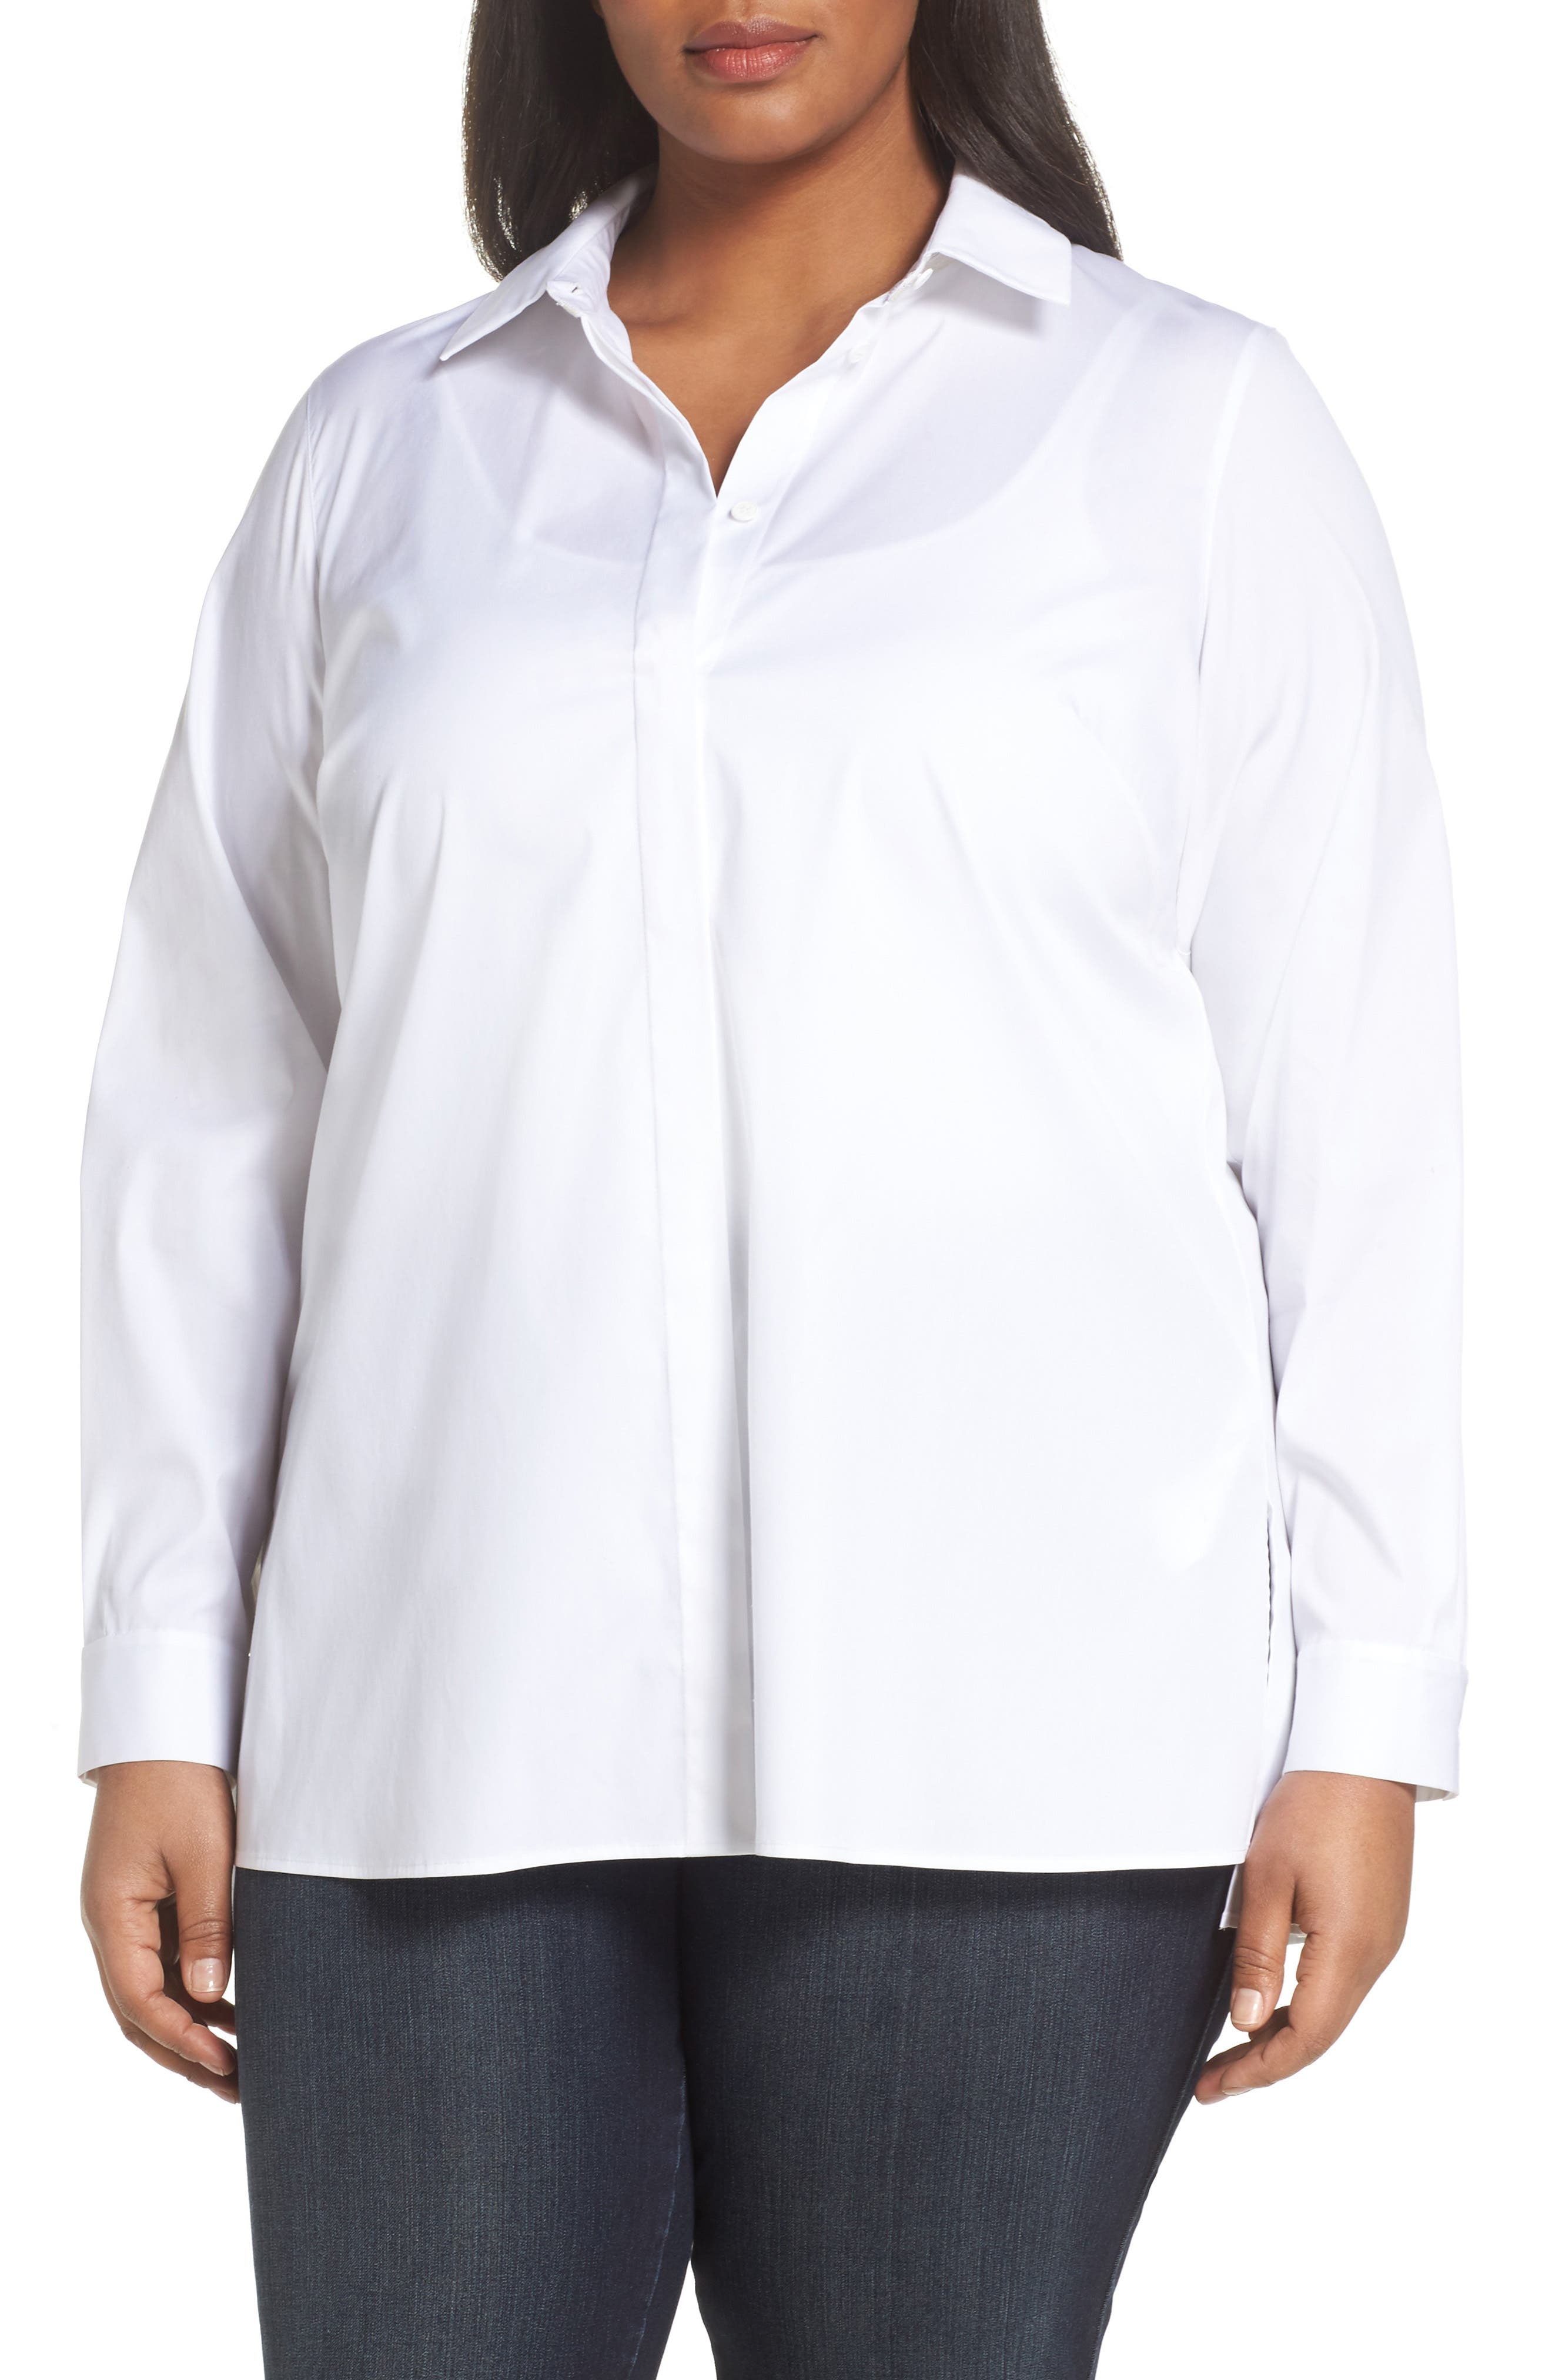 Lafayette 148 Braden Step Hem Blouse,                             Main thumbnail 1, color,                             100